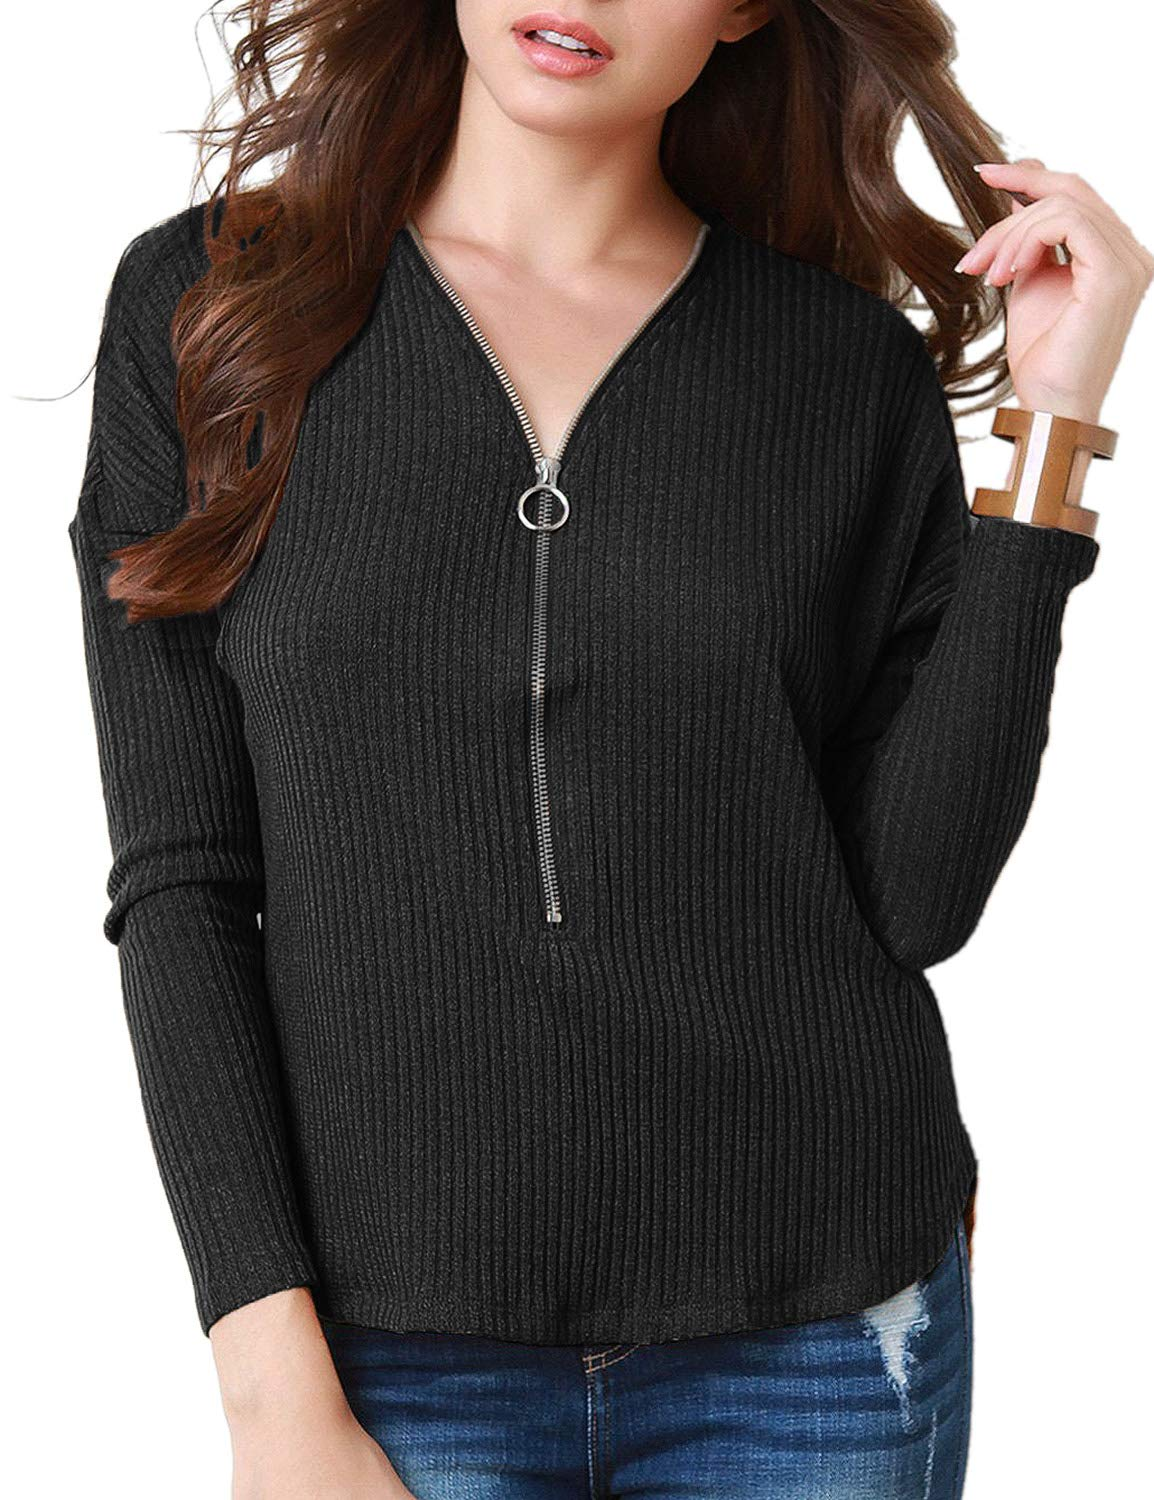 Utyful Women Casual Zipper V Neck Ribbed Knit Solid Black Long Sleeves Pullover Tops Shirts Size S 4 6